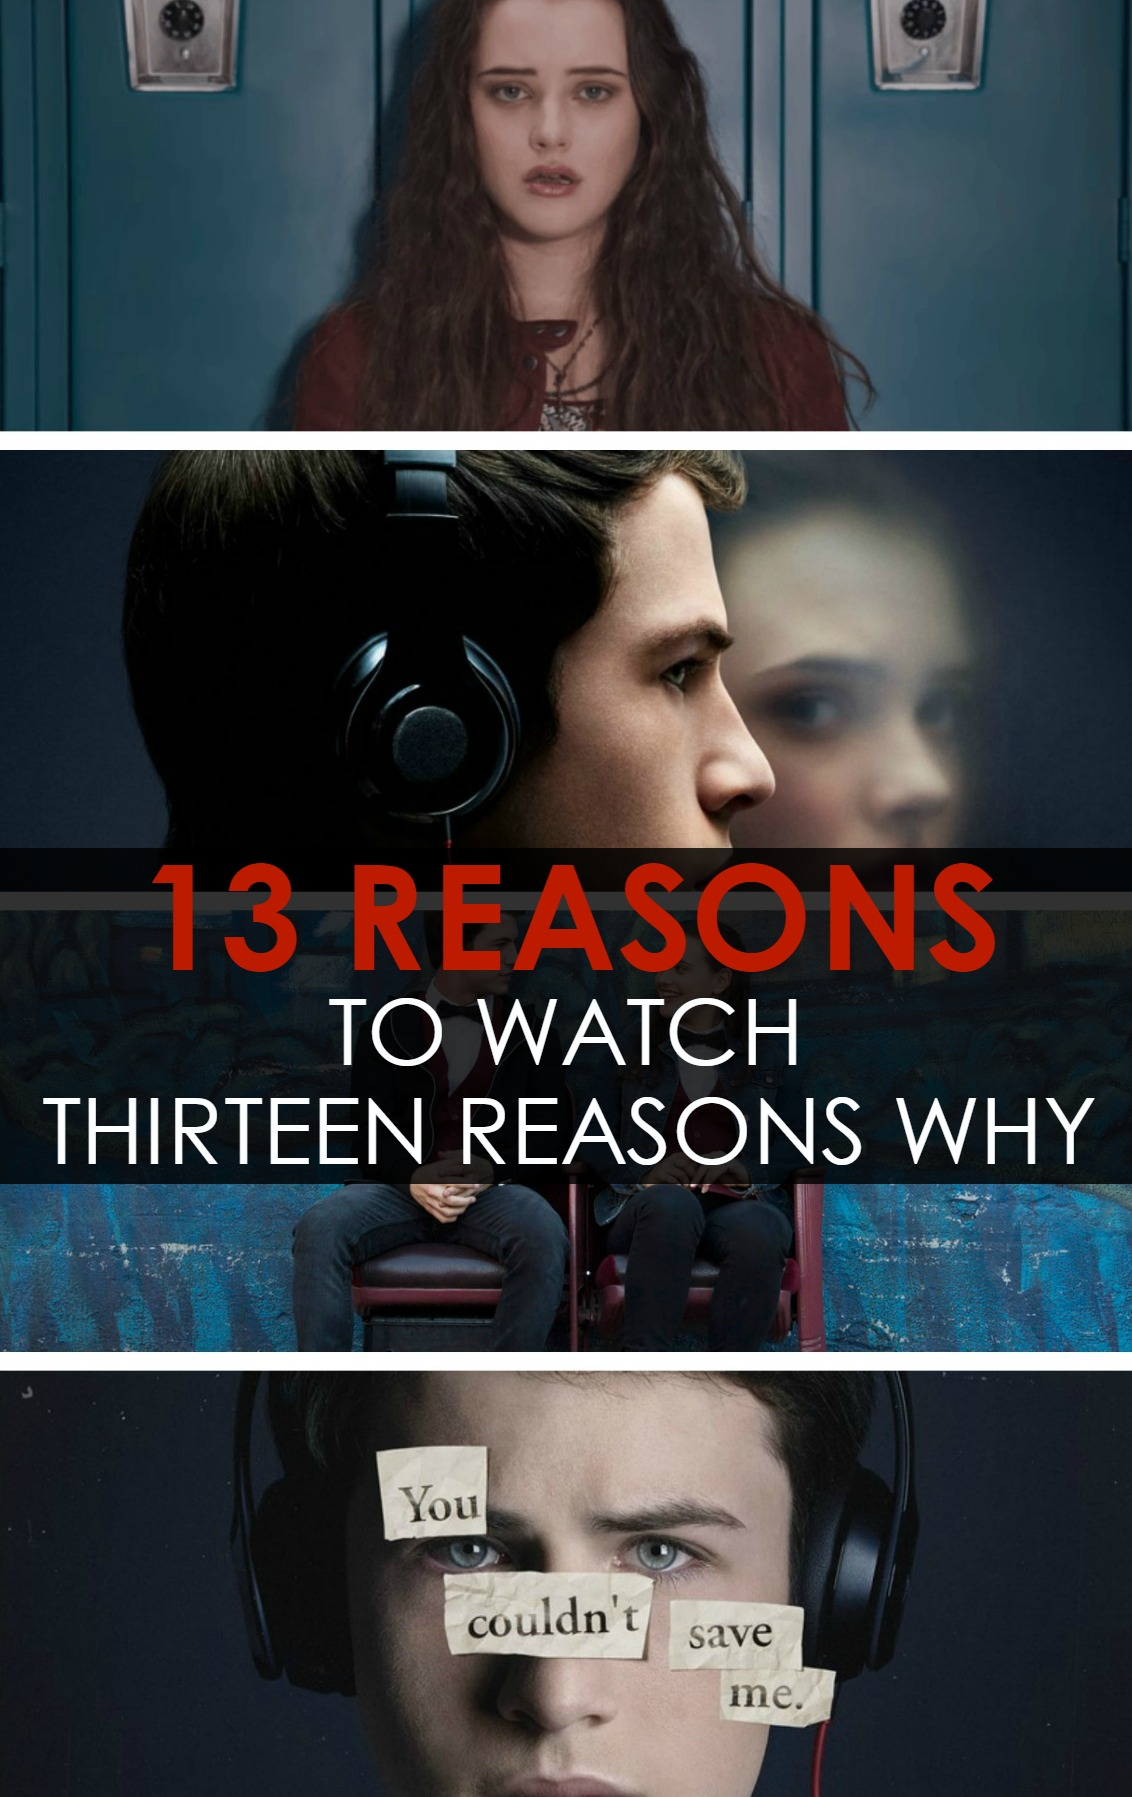 13 Reasons to watch Thirteen Reasons Why